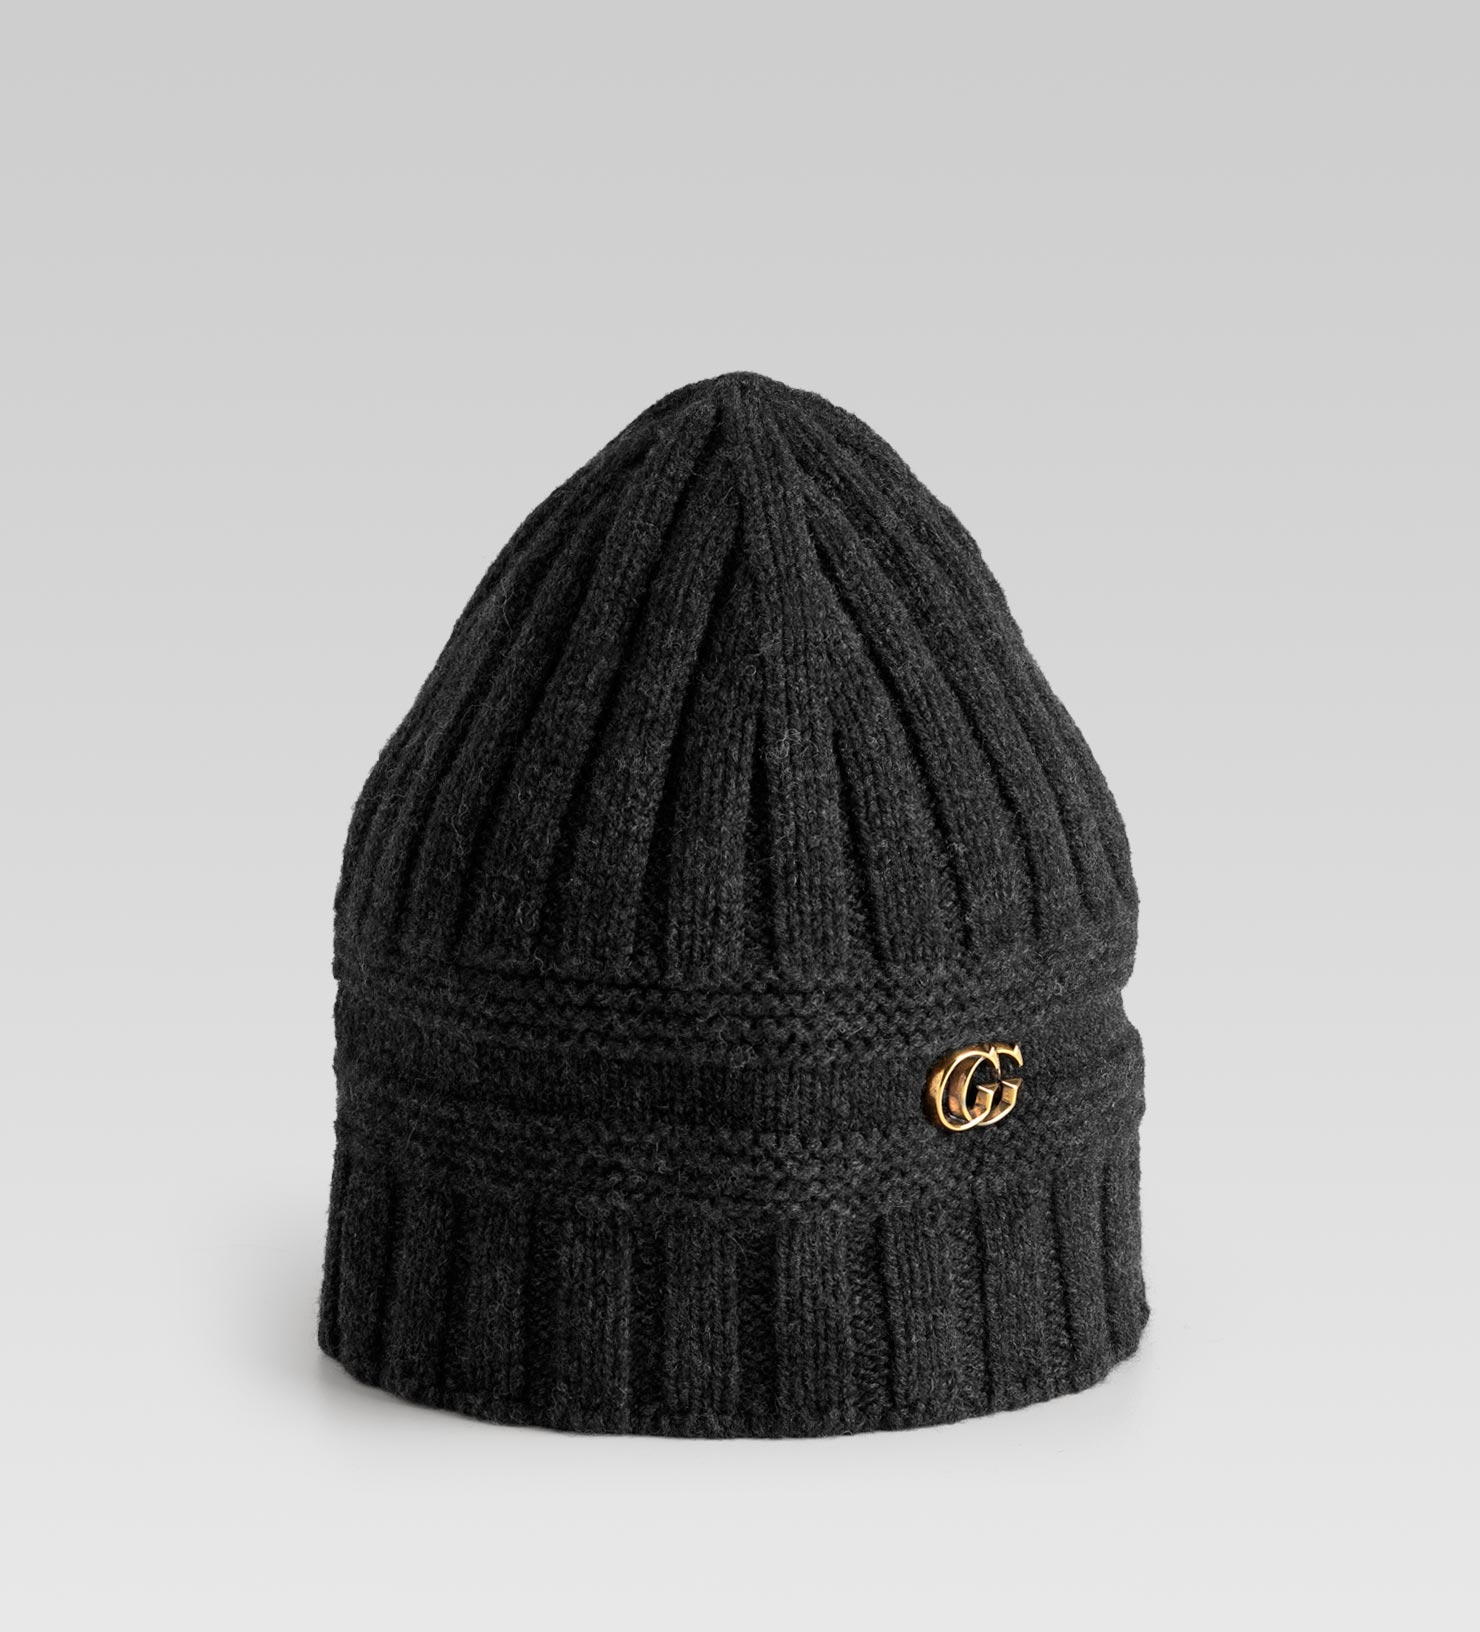 87e49741f8bd3 Lyst - Gucci Knit Hat with Double G Detail in Gray for Men